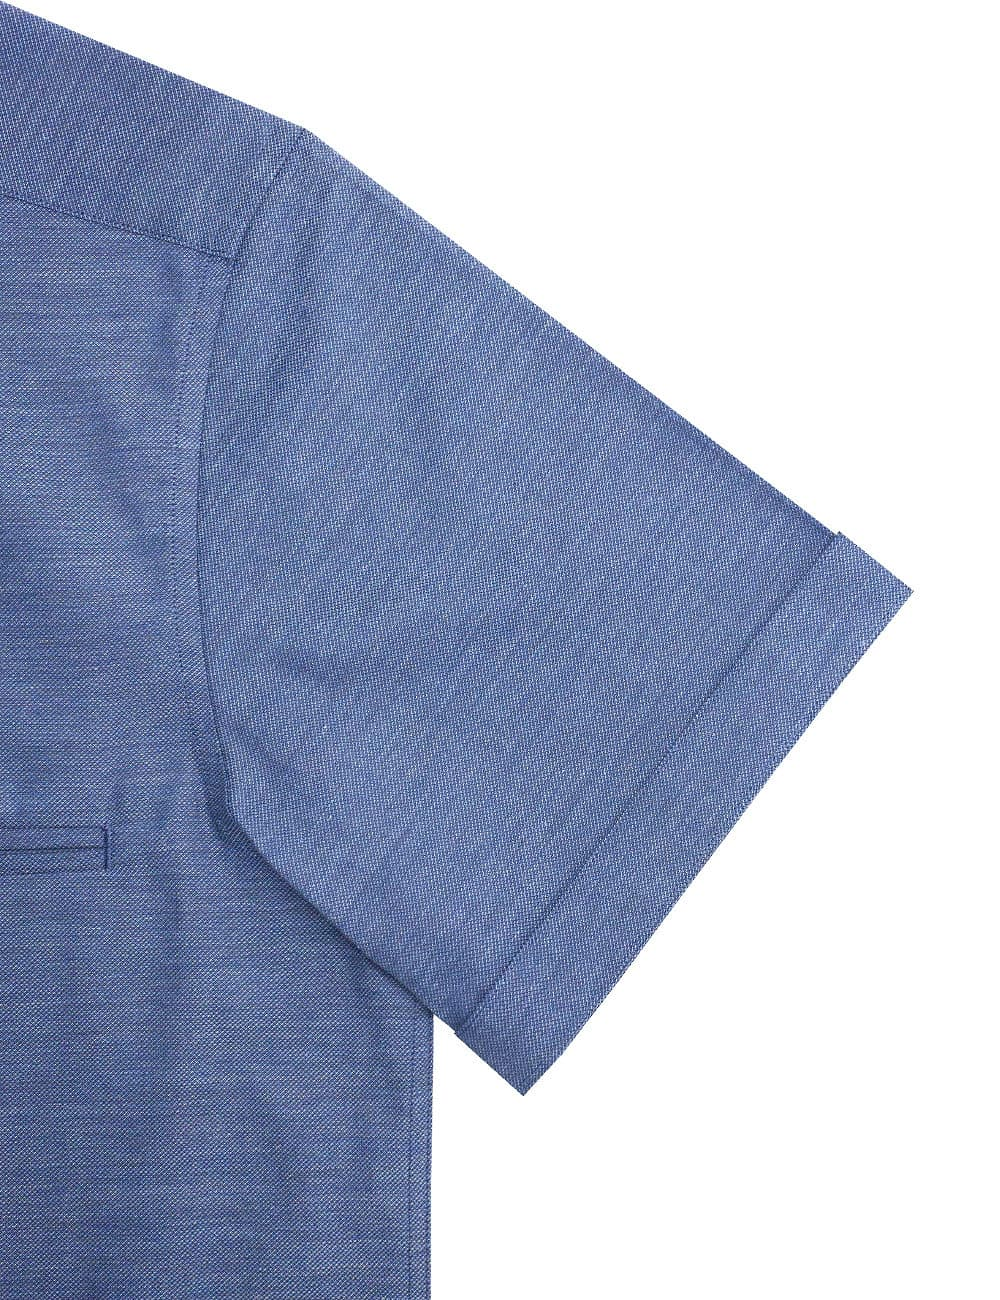 RF Blue Heather 100% Premium Cotton Easy Iron Short Sleeve Shirt RF9SNB6.15